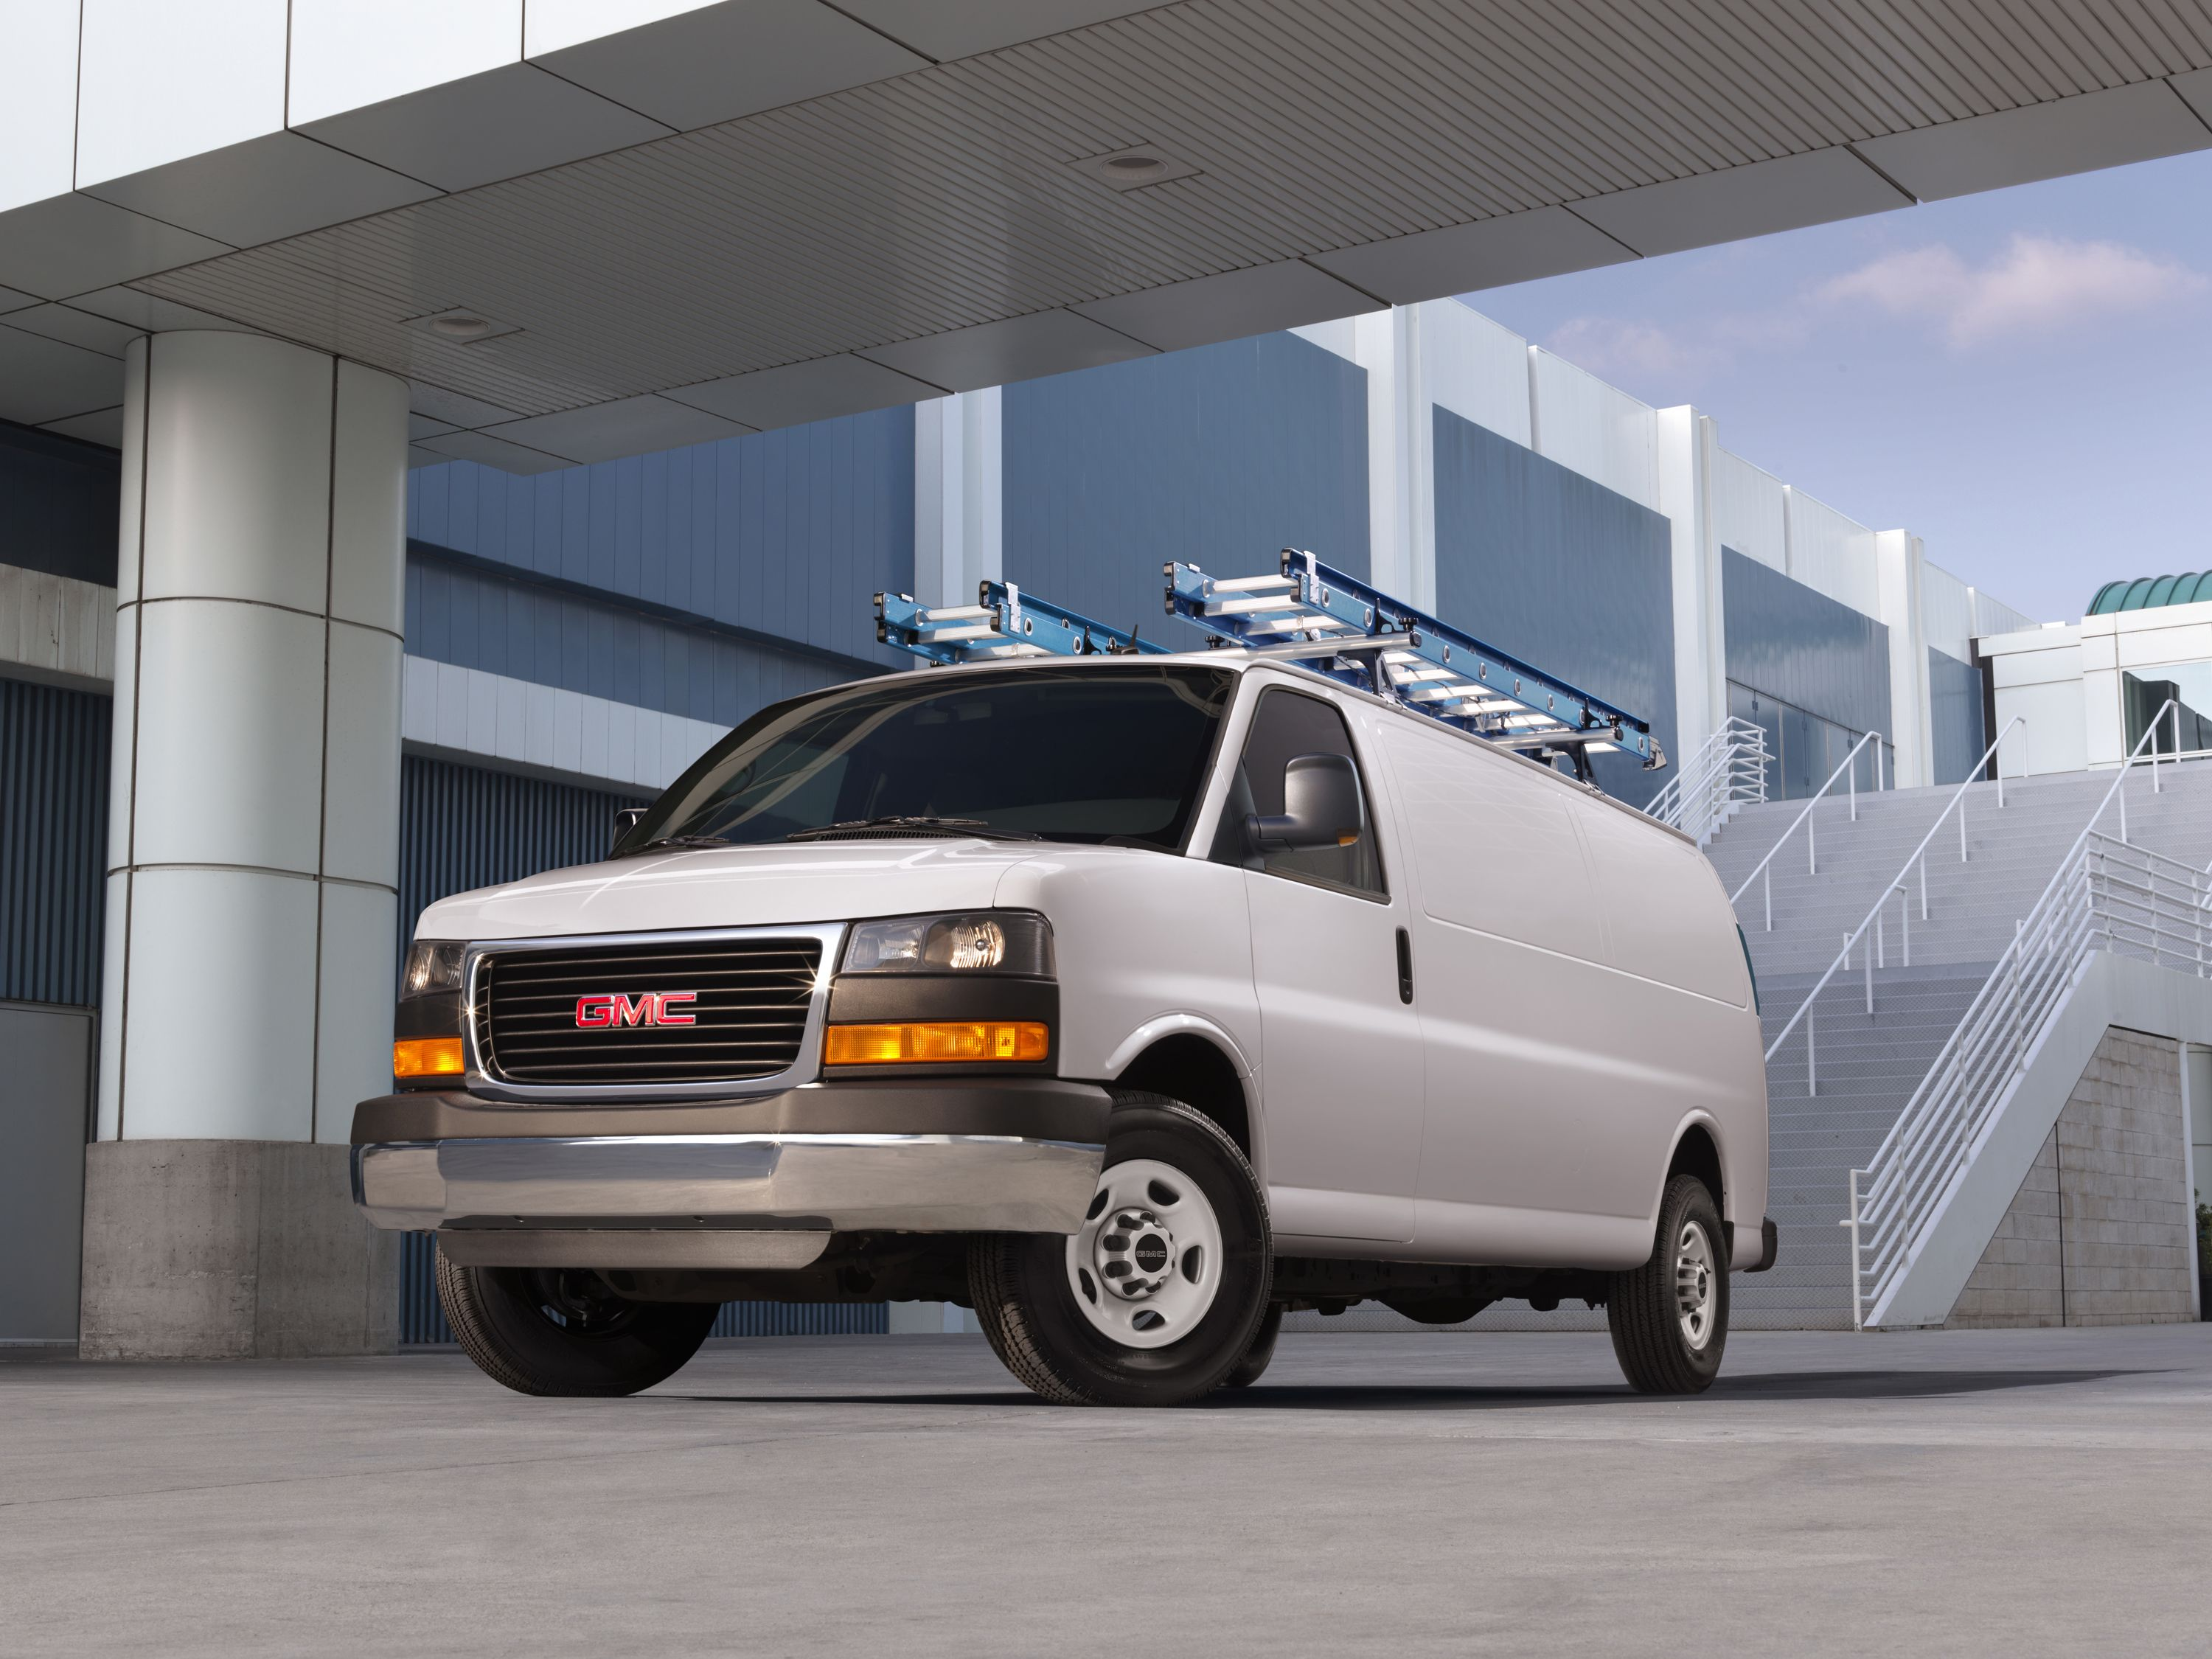 2021 Gmc Savana Review Pricing And Specs